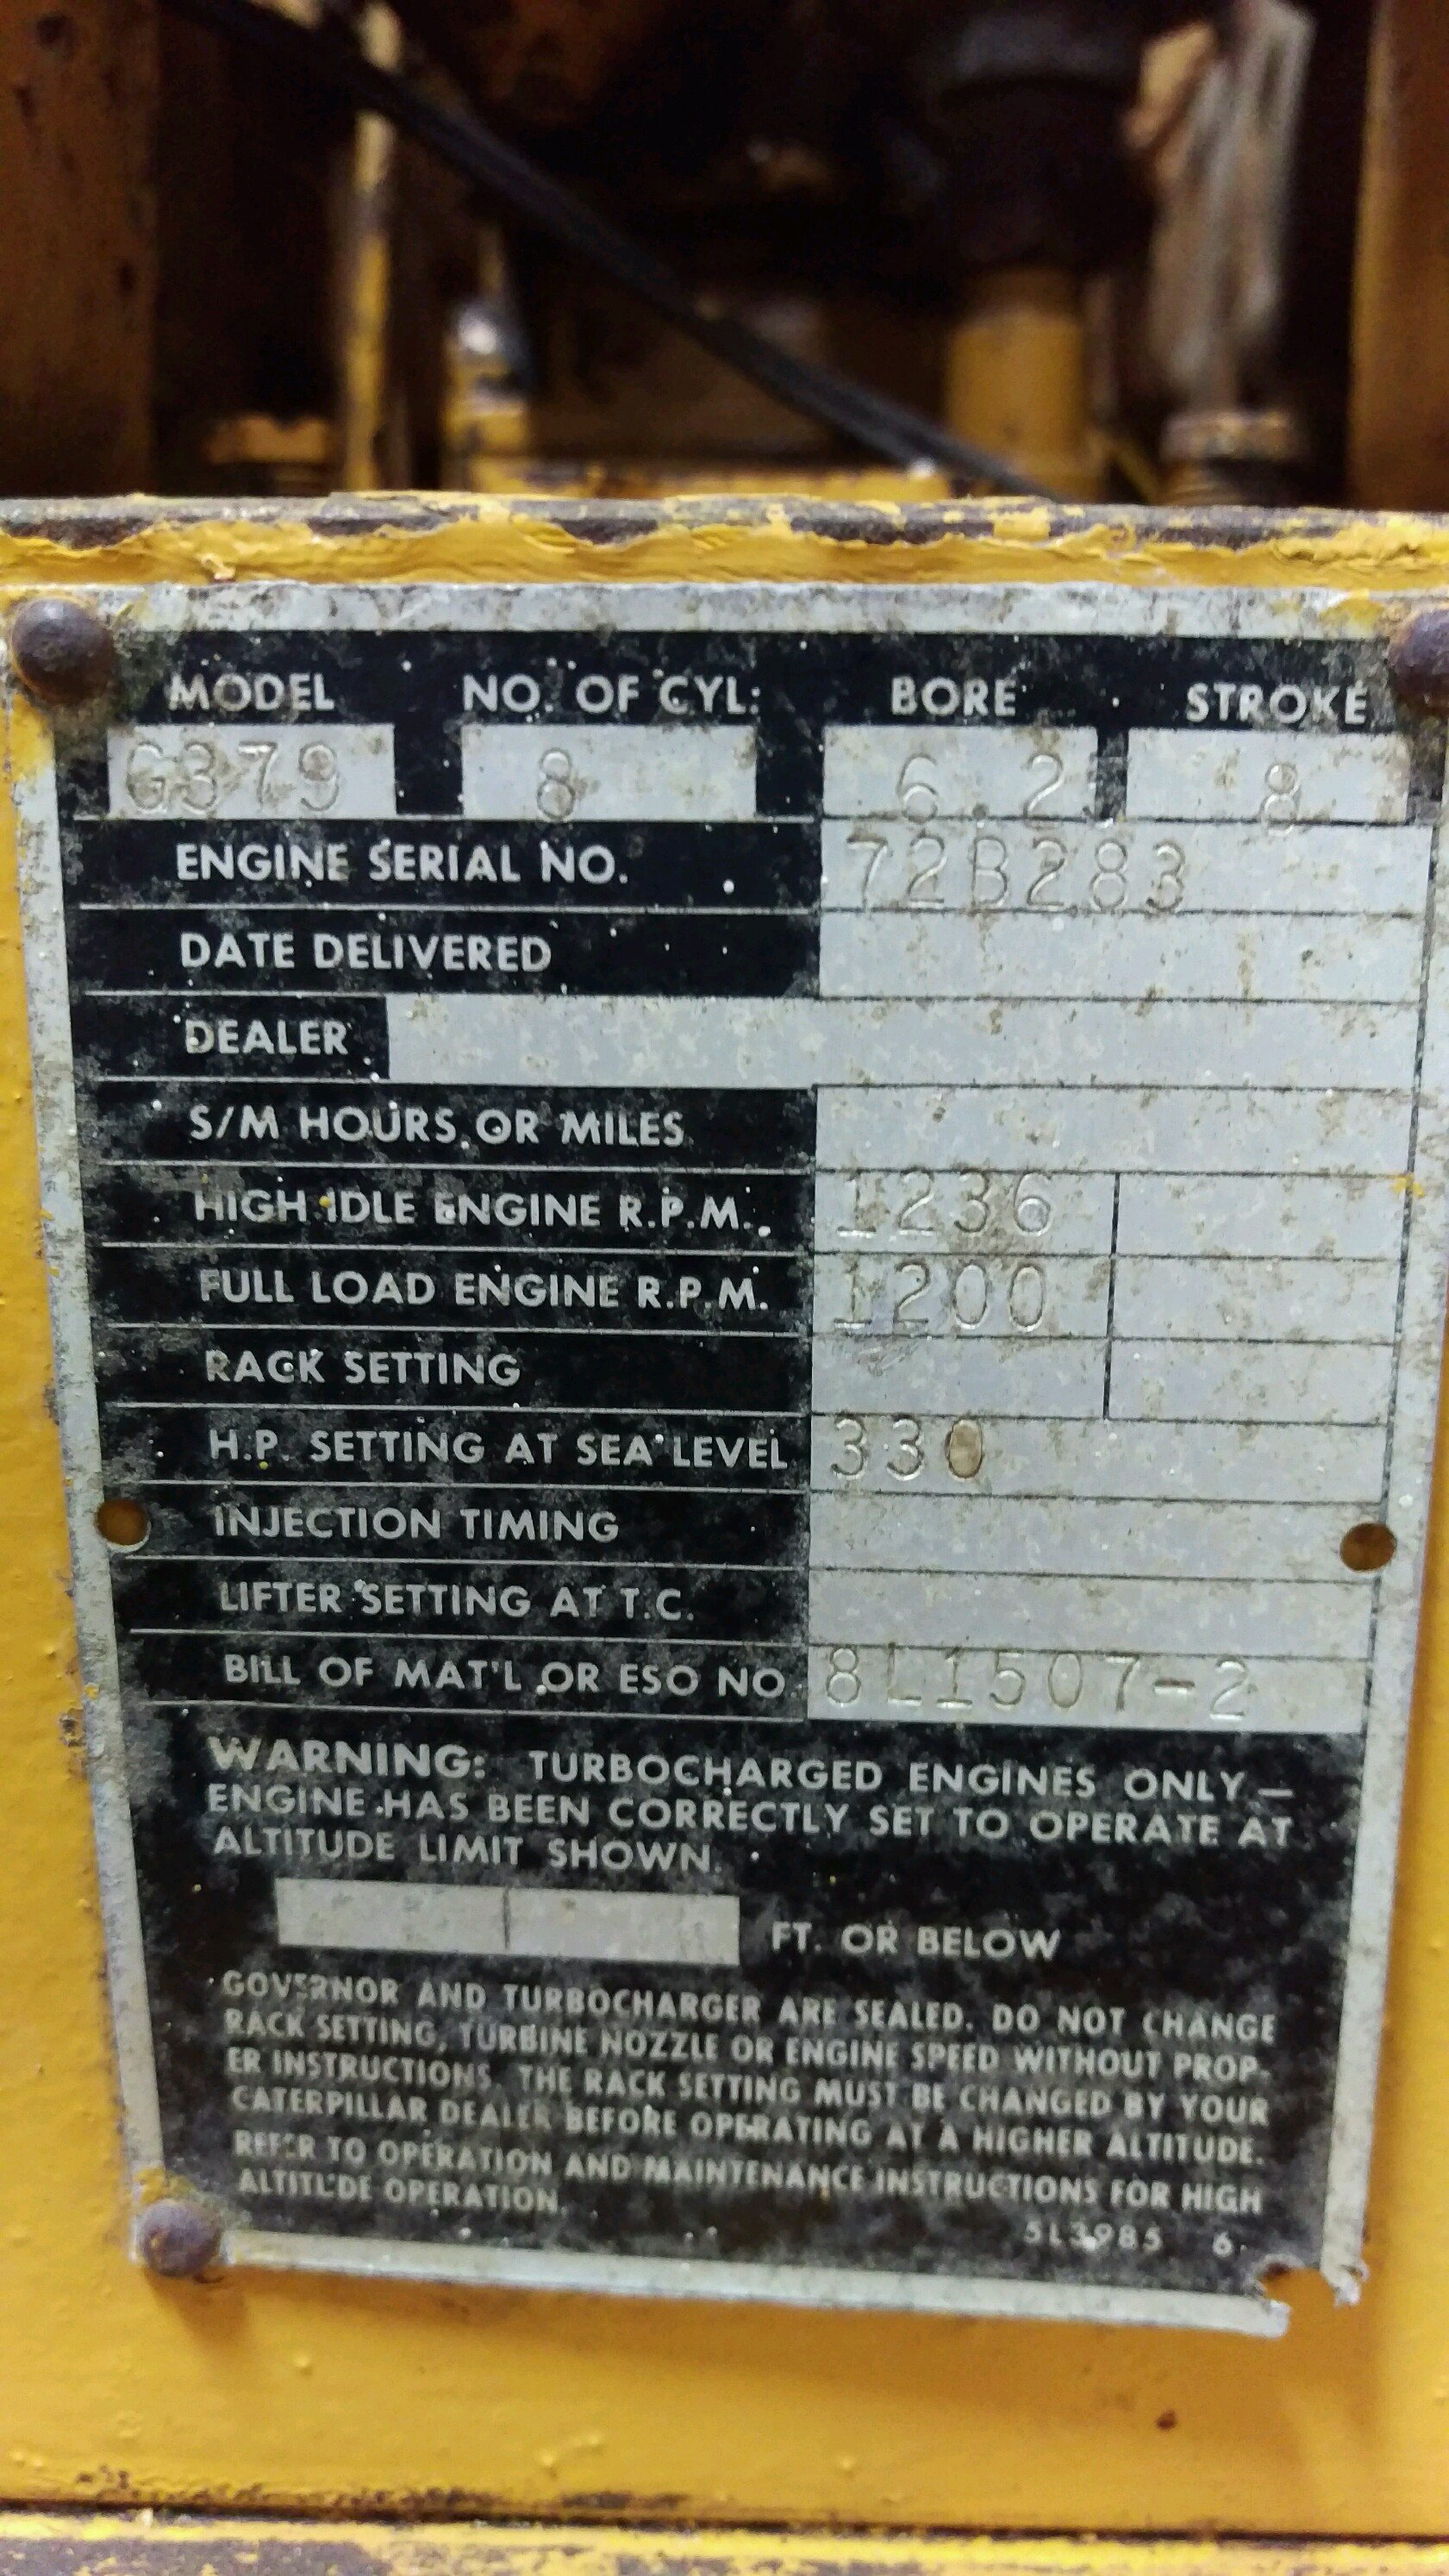 Machine specifications detail